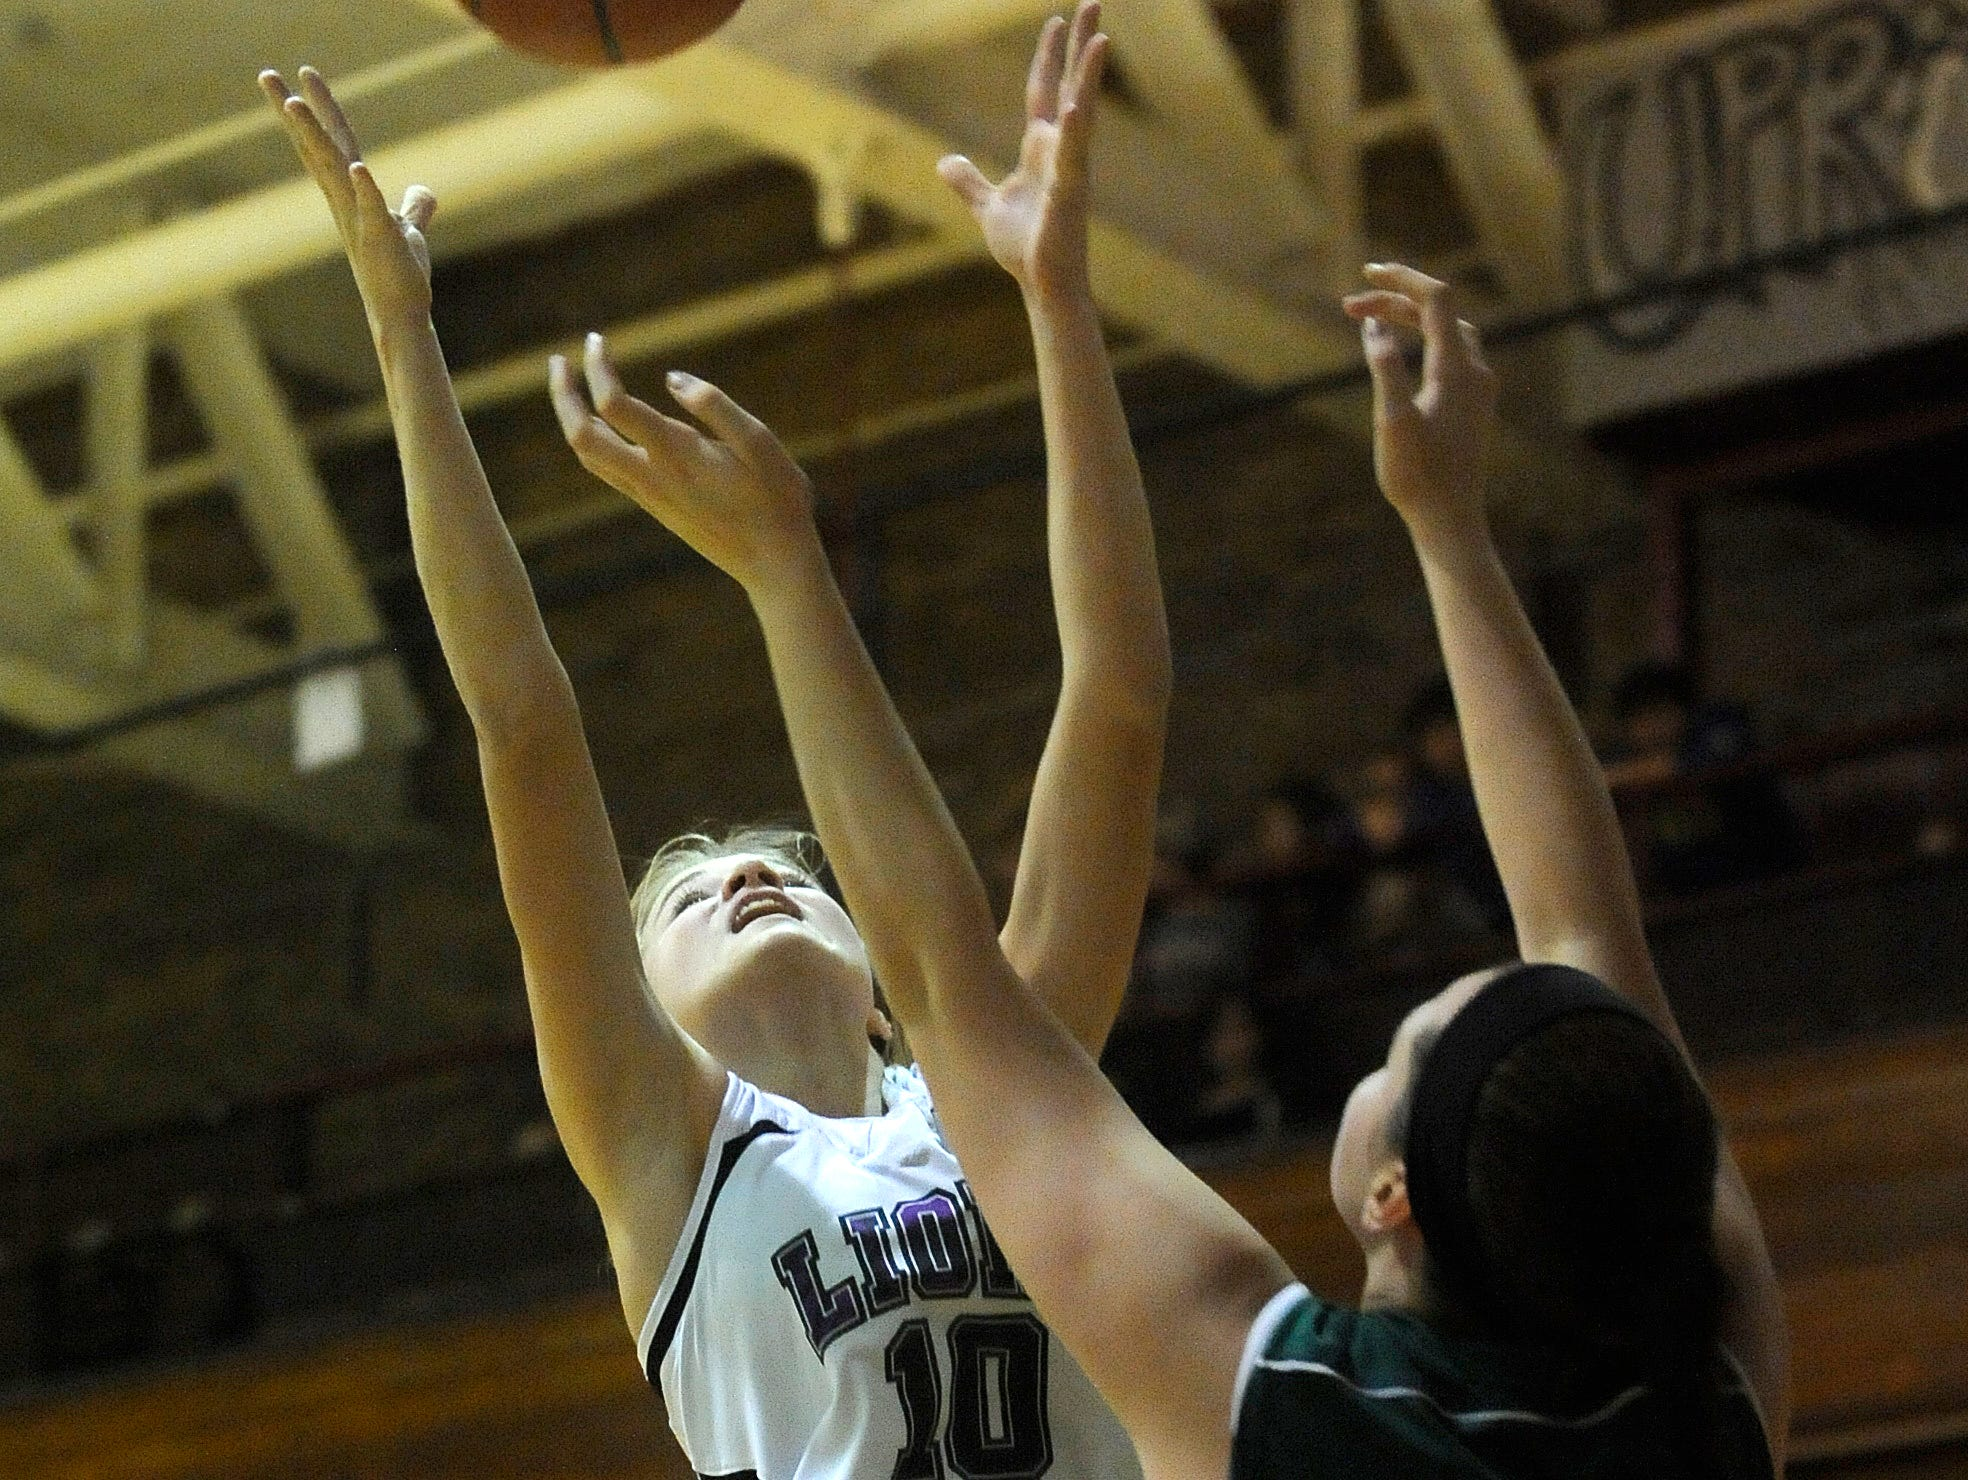 Granville Christian's Payton Hartshorn pulls down a rebound over Northridge's Kendra Martin. The Lions defeated the Vikings 38-27 on Friday, Nov. 20, 2015, at the Fifth Street Gym in Newark.